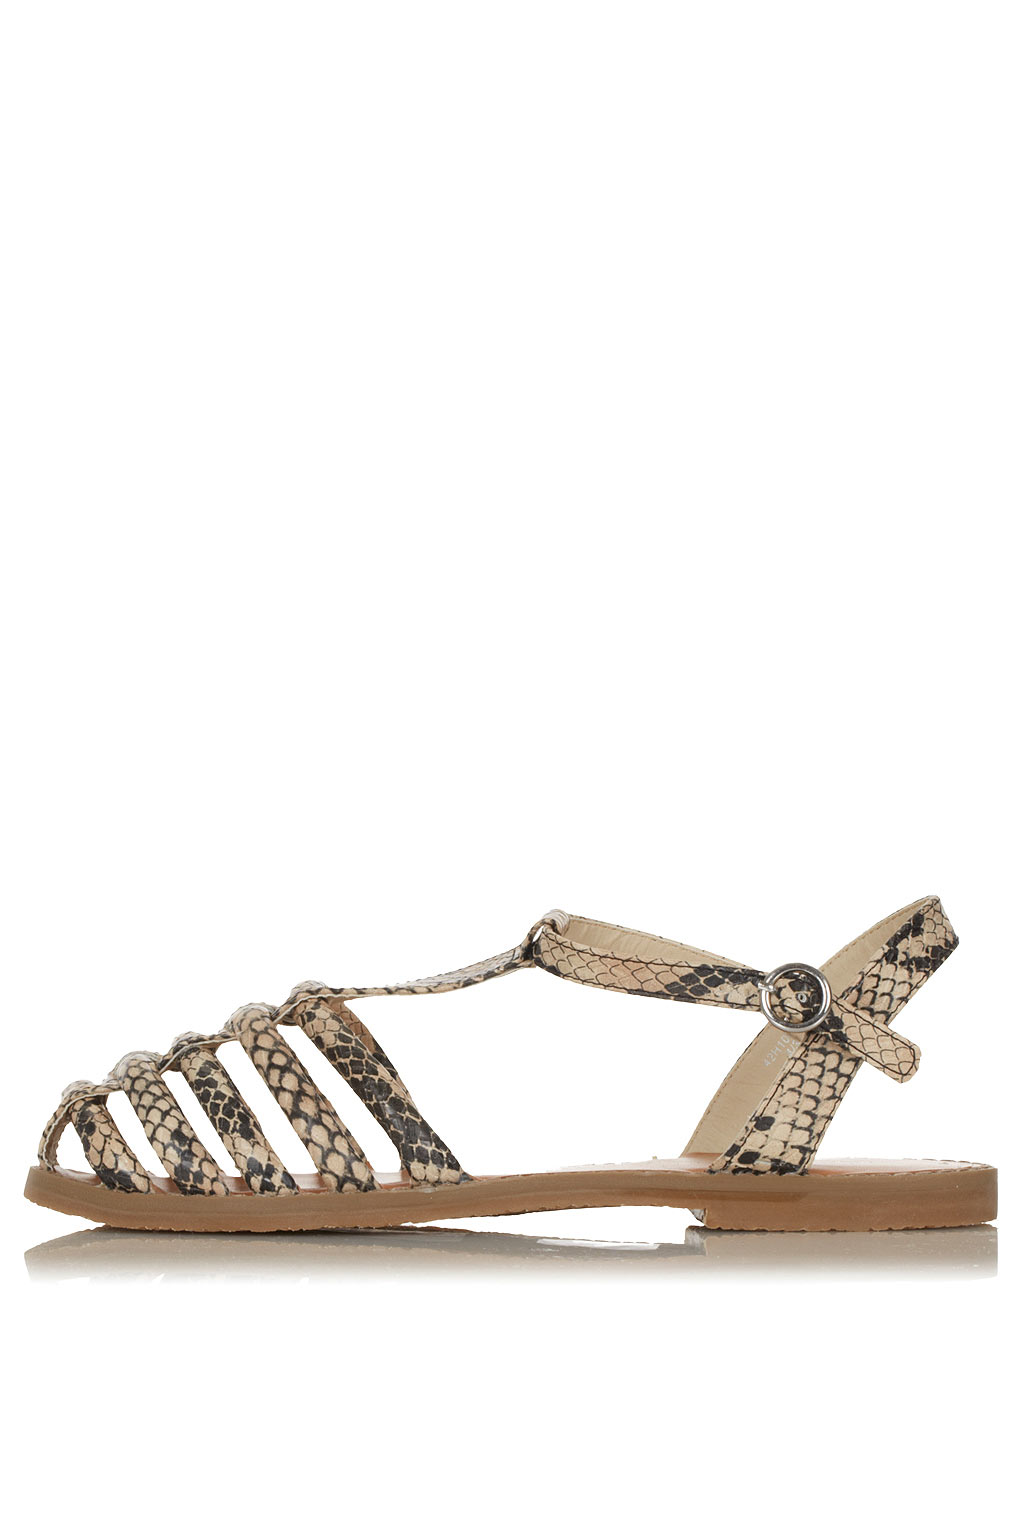 Black enclosed sandals - Gallery Women S Cage Sandals